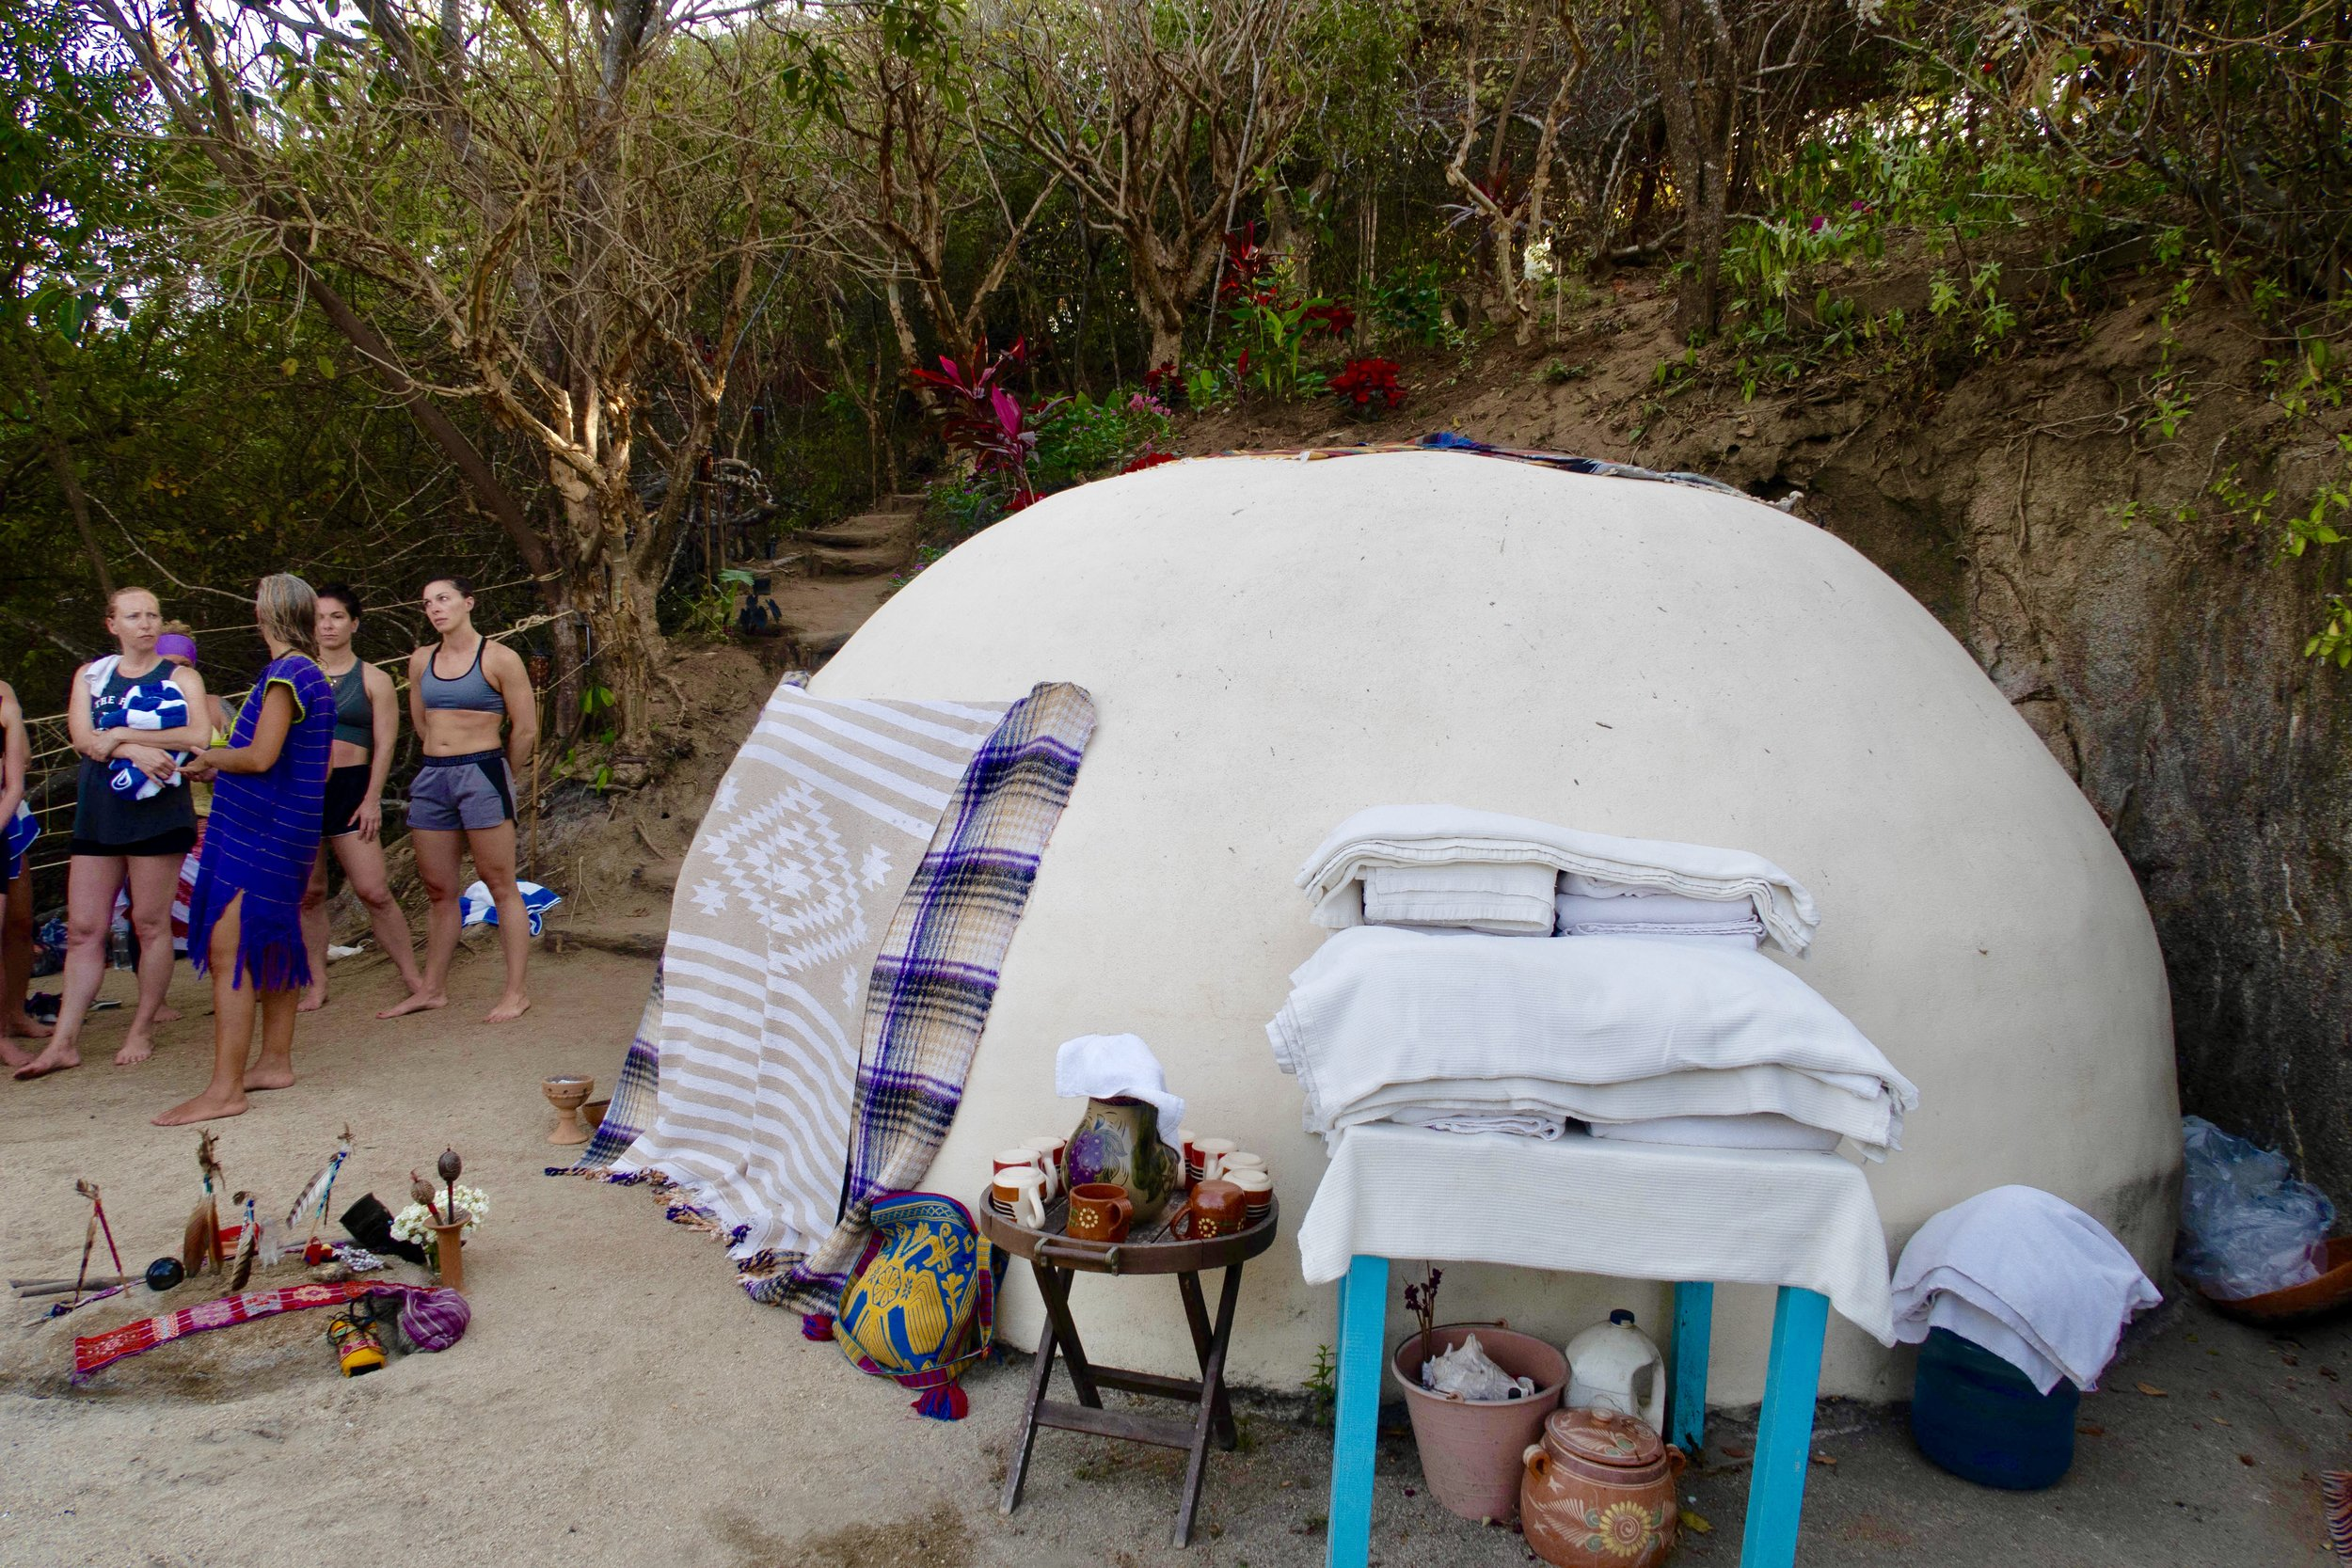 The ancient healing sweat lodge ceremony womb. Offered (completely optional!) to shed old ways of being and to let our jungle souls free.